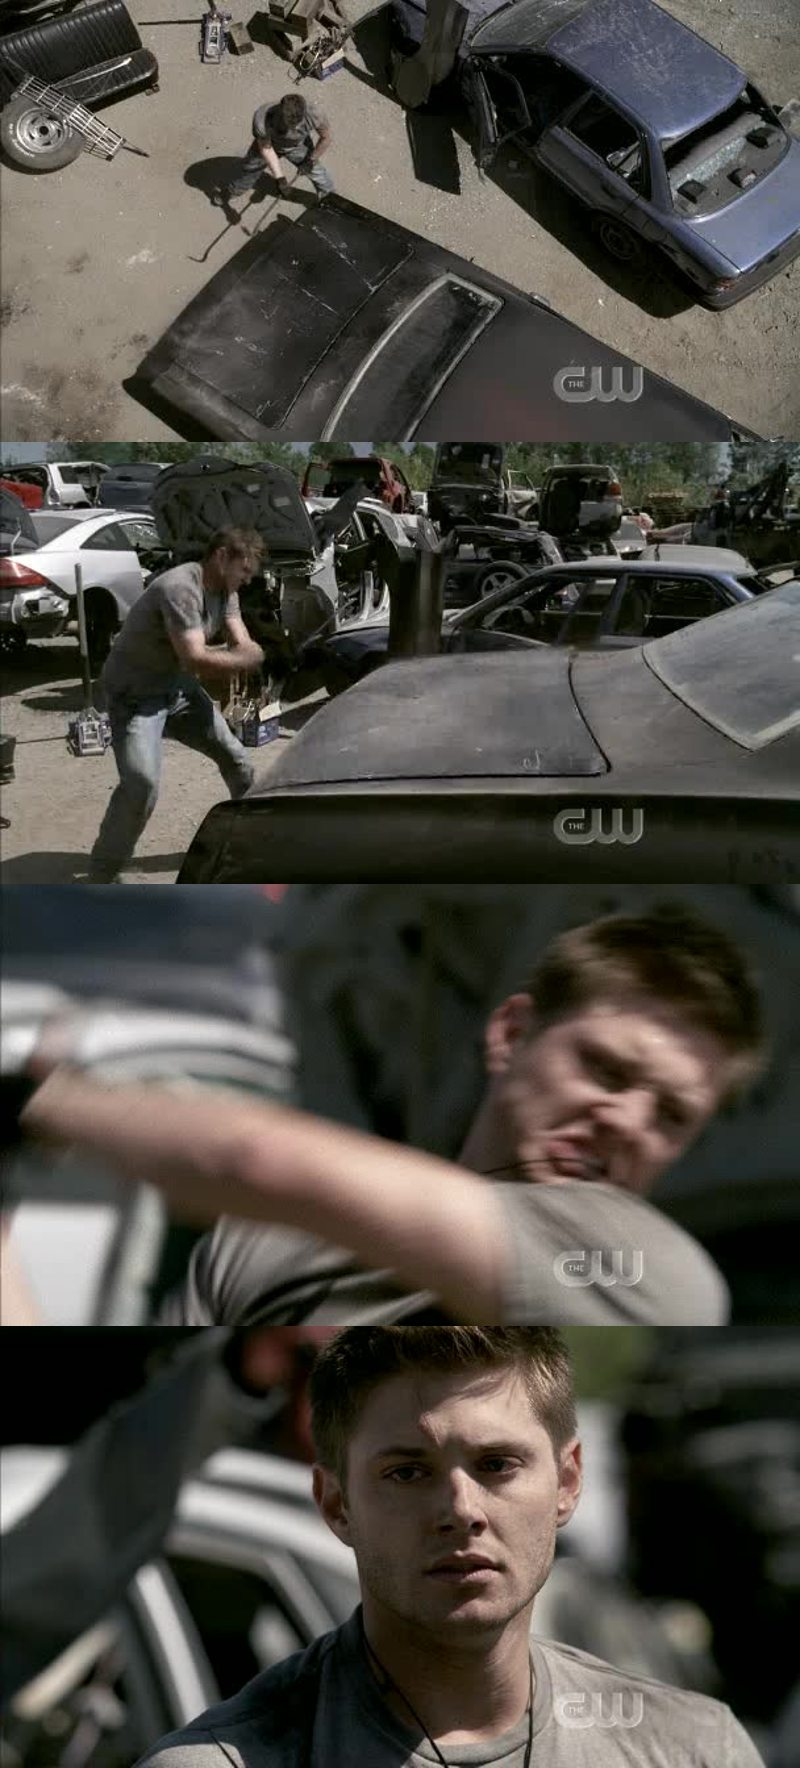 How to know when Dean is really not okay :(